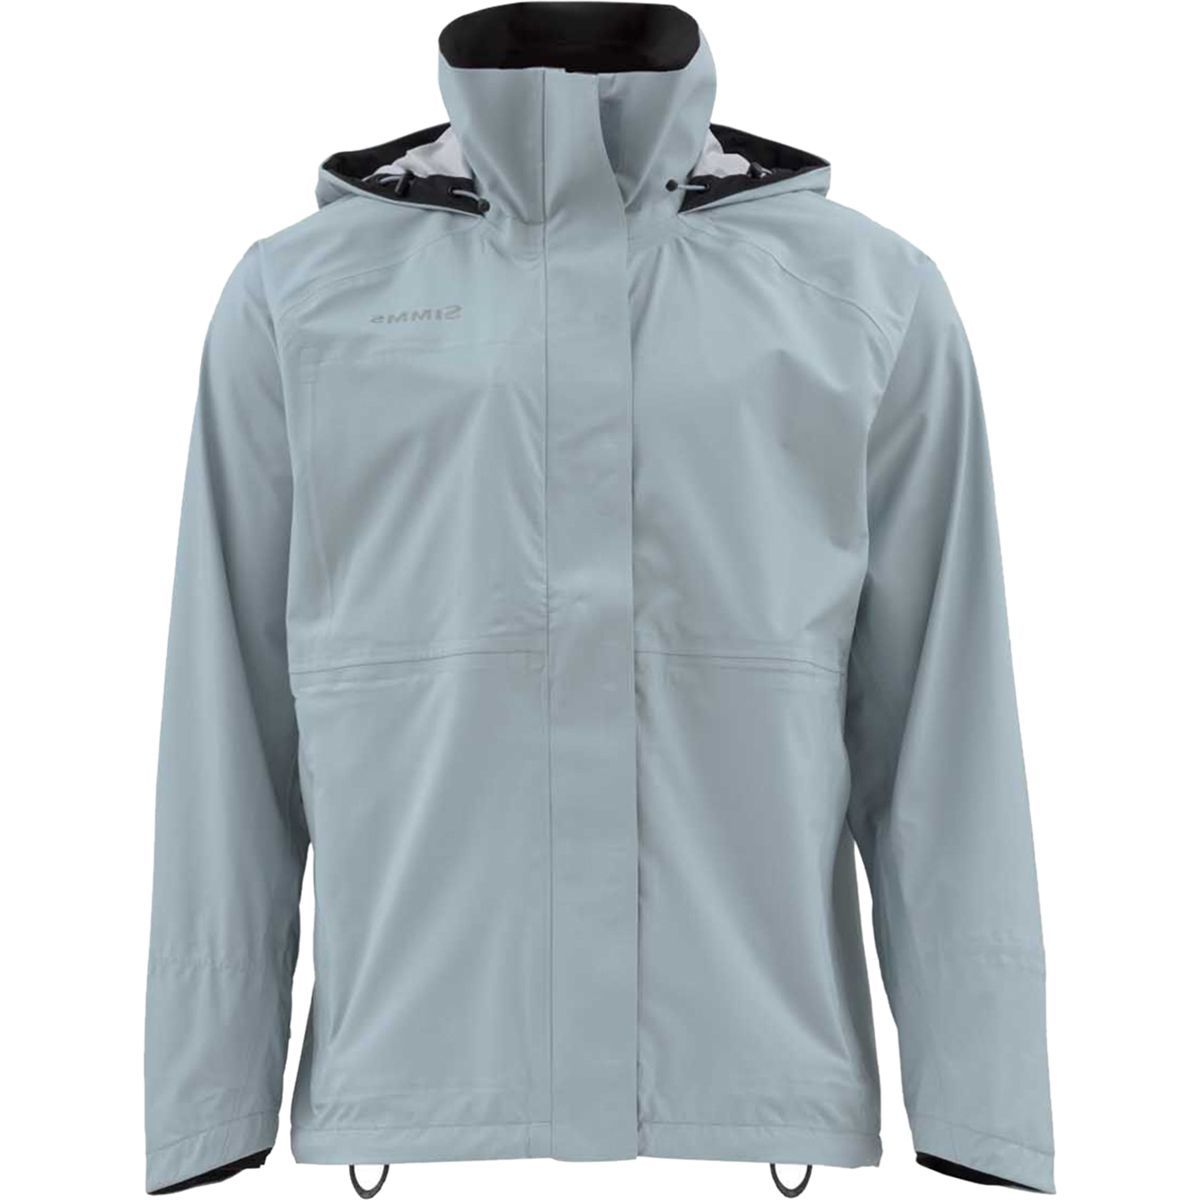 Simms Vapor Elite Jacket - Men's